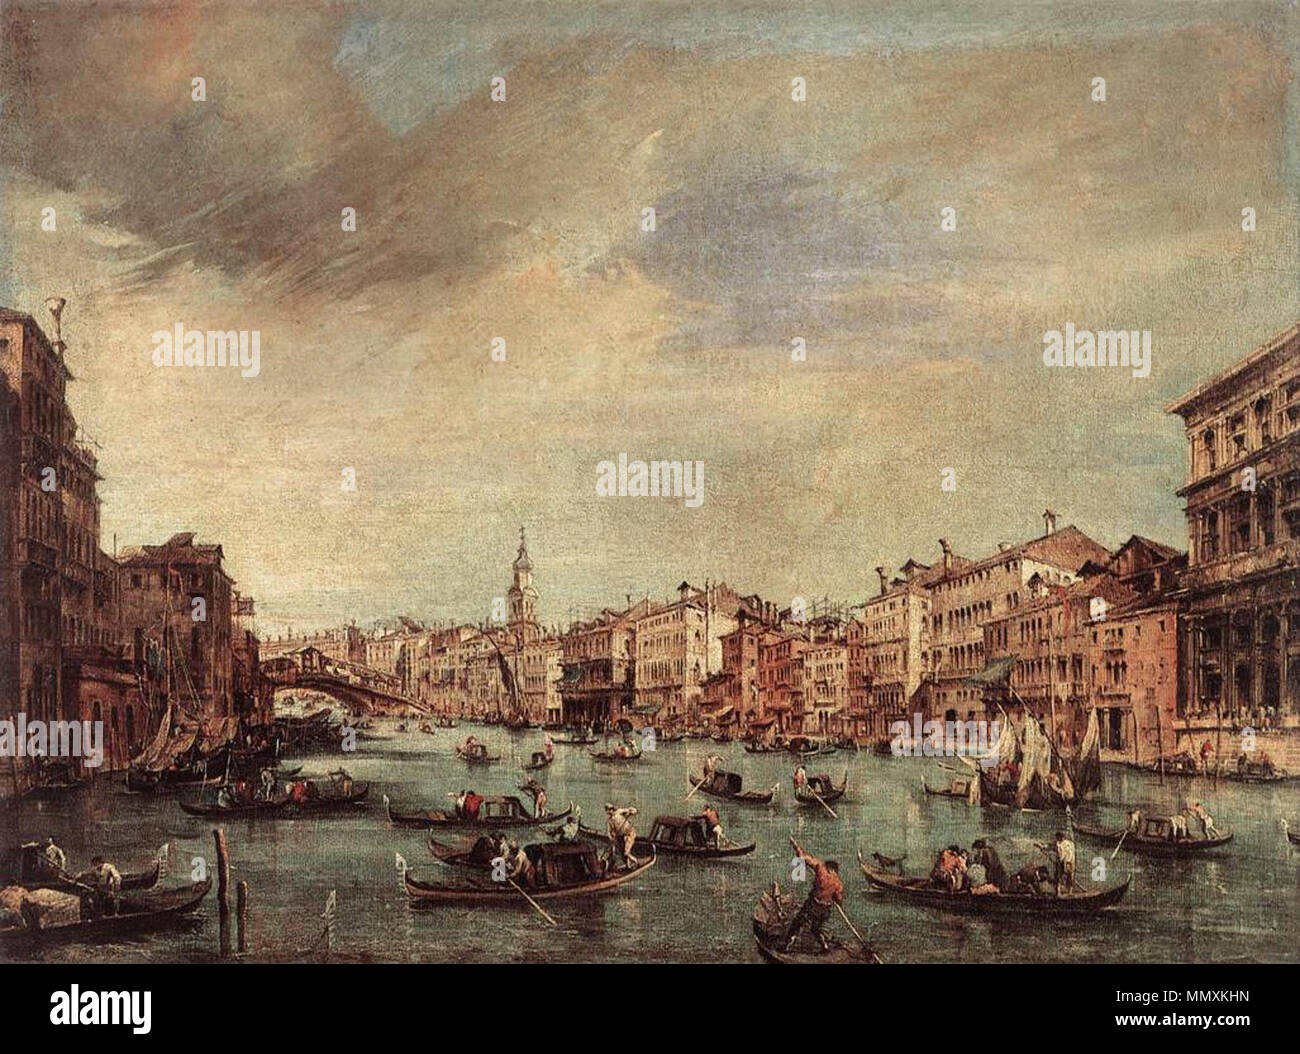 The Grand Canal, Looking toward the Rialto Bridge. circa 1765. Francesco Guardi - The Grand Canal, Looking toward the Rialto Bridge - WGA10843 Stock Photo